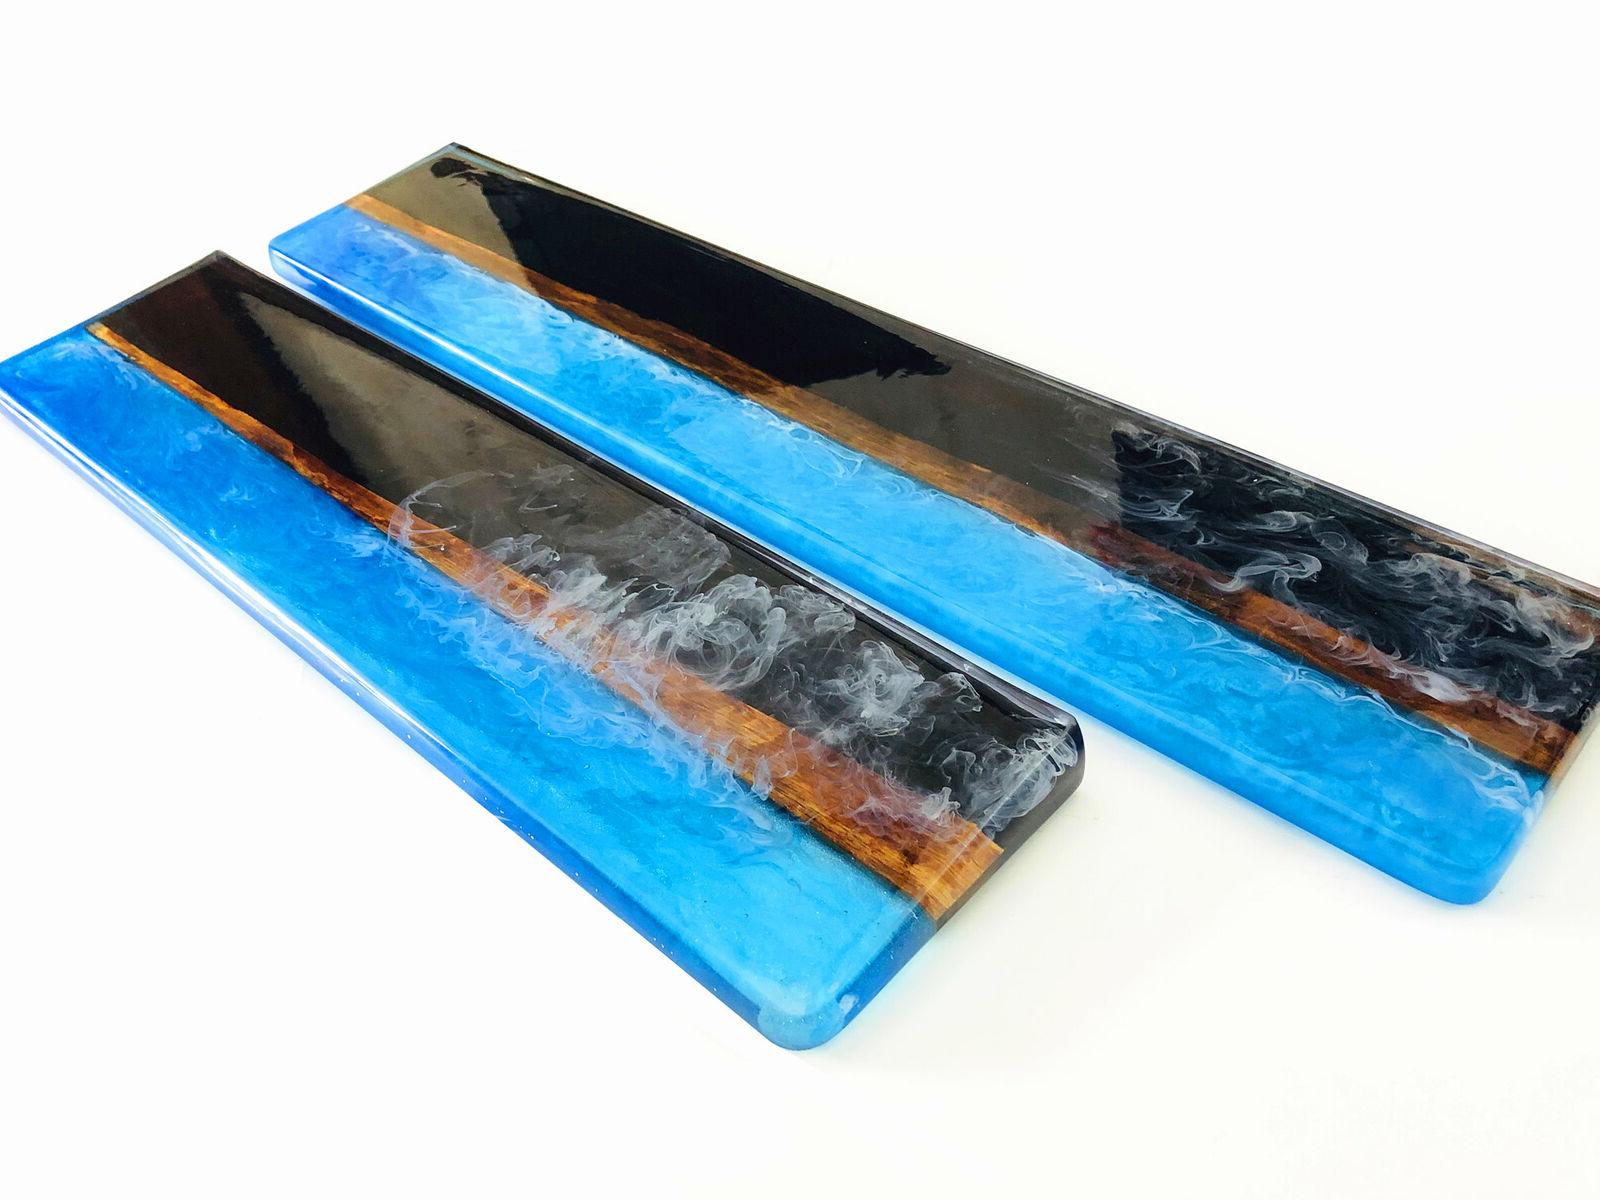 87/104 Resin Wood Rest Wrist Pad for Mechanical Keyboard